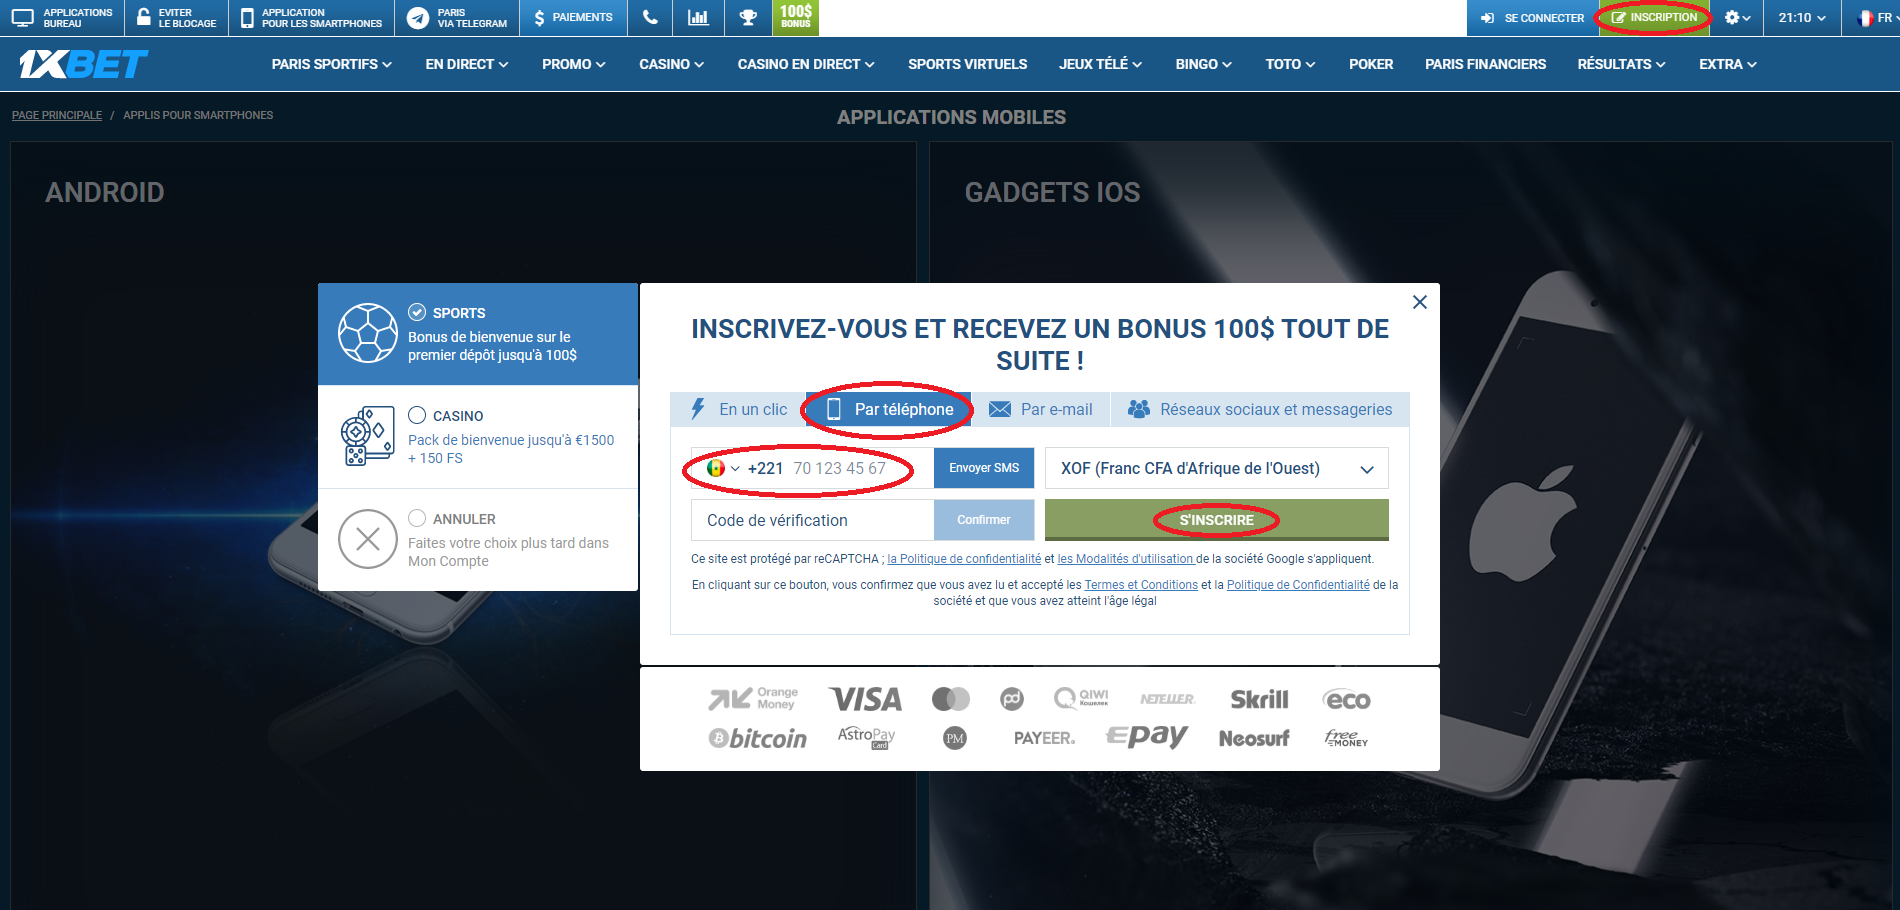 L'application 1xBet Android site web pour les gadgets mobiles